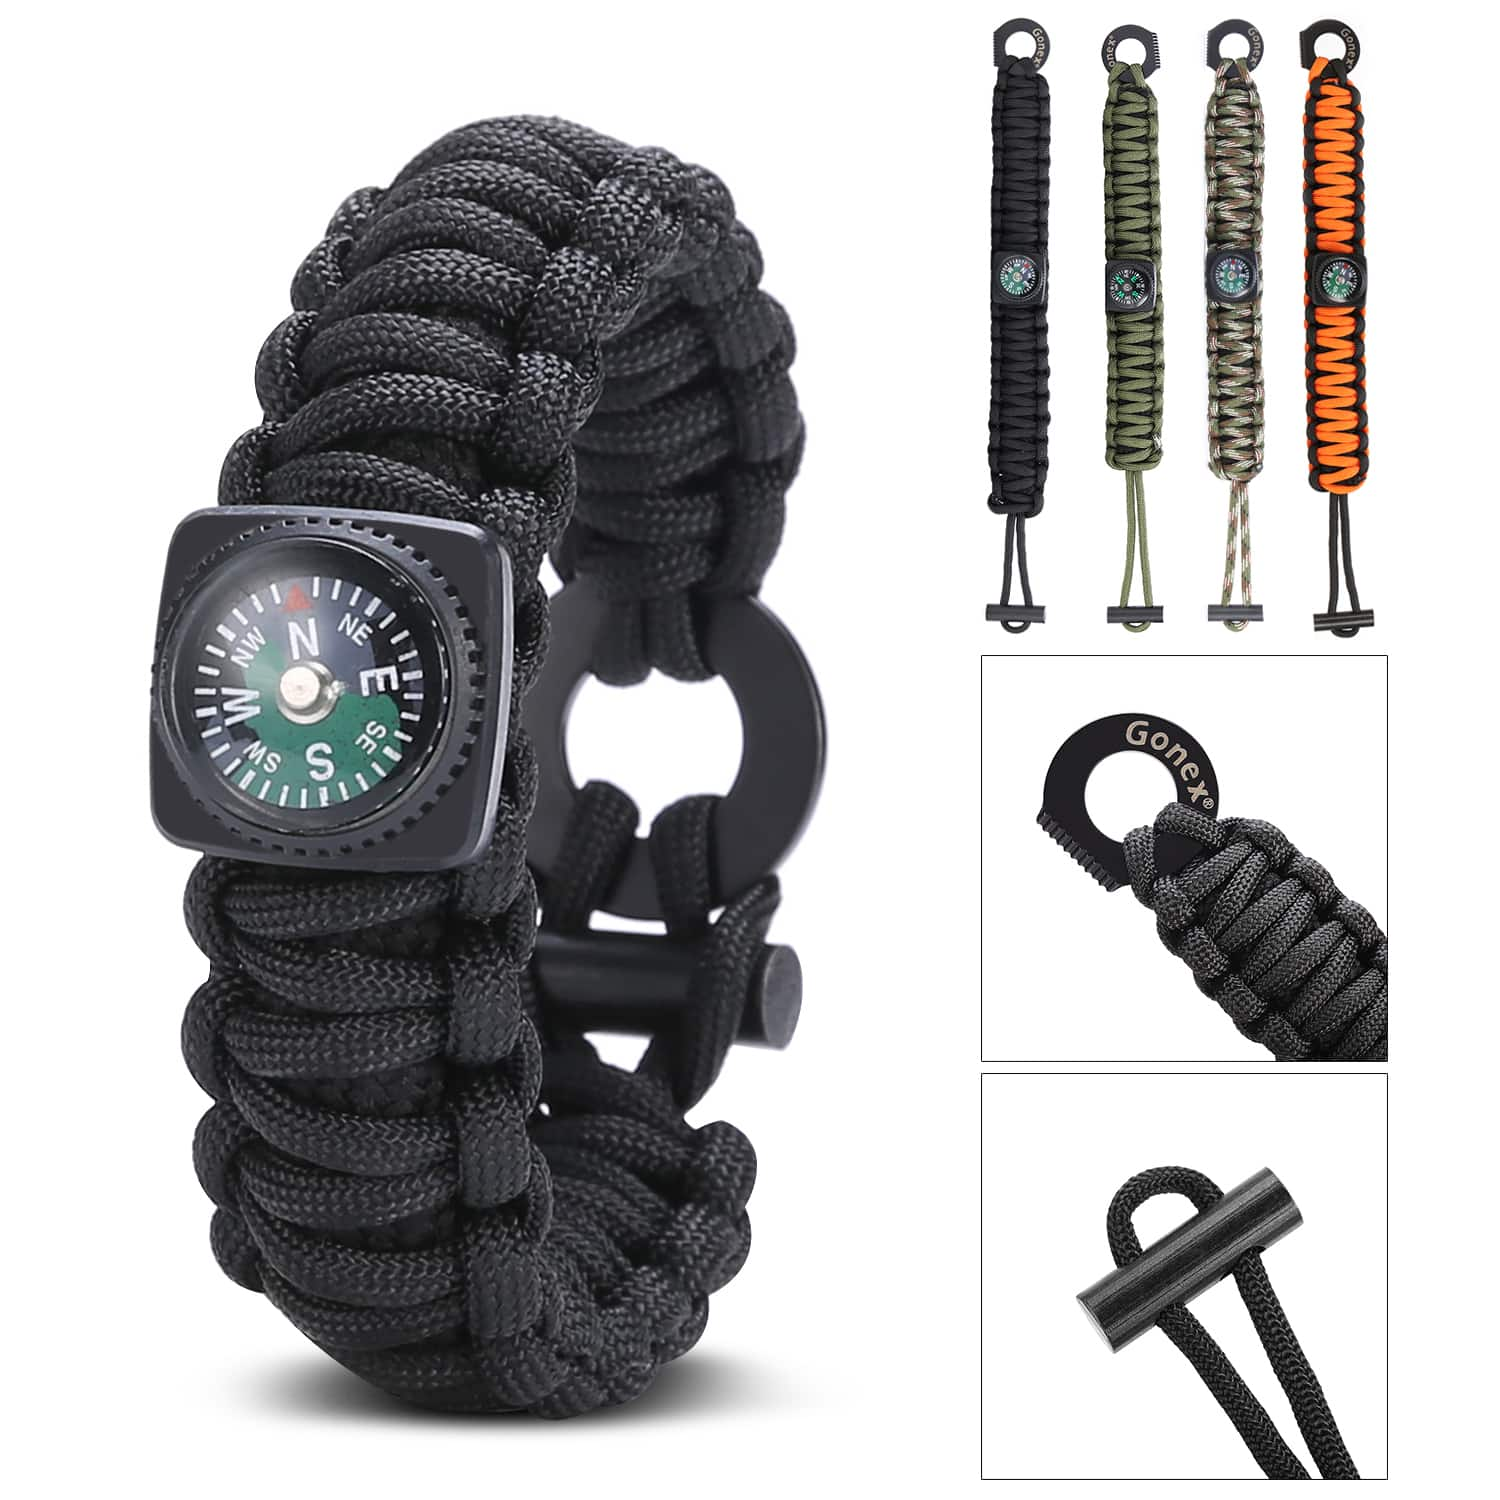 Gonex Paracord 550 Survival Bracelet with Compass, Eye Knife, Fire Starter, Fishing Tool $5.99 | FREE shipping